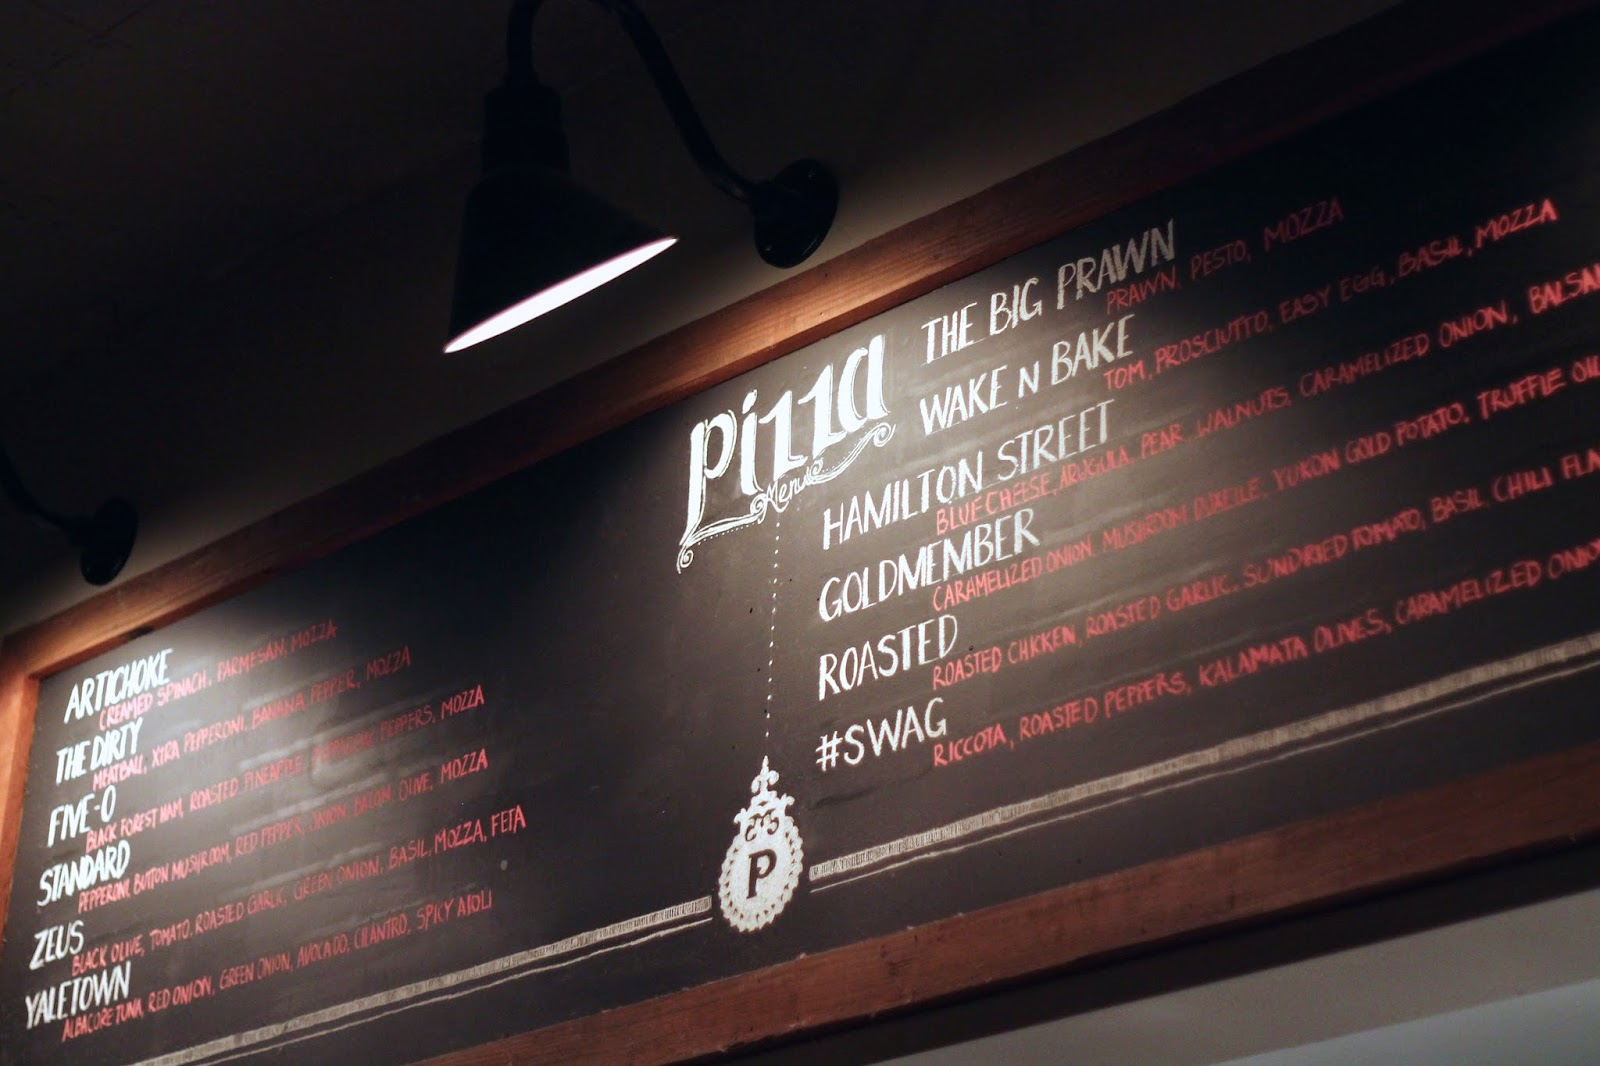 The parlour pizza shop in Vancouver